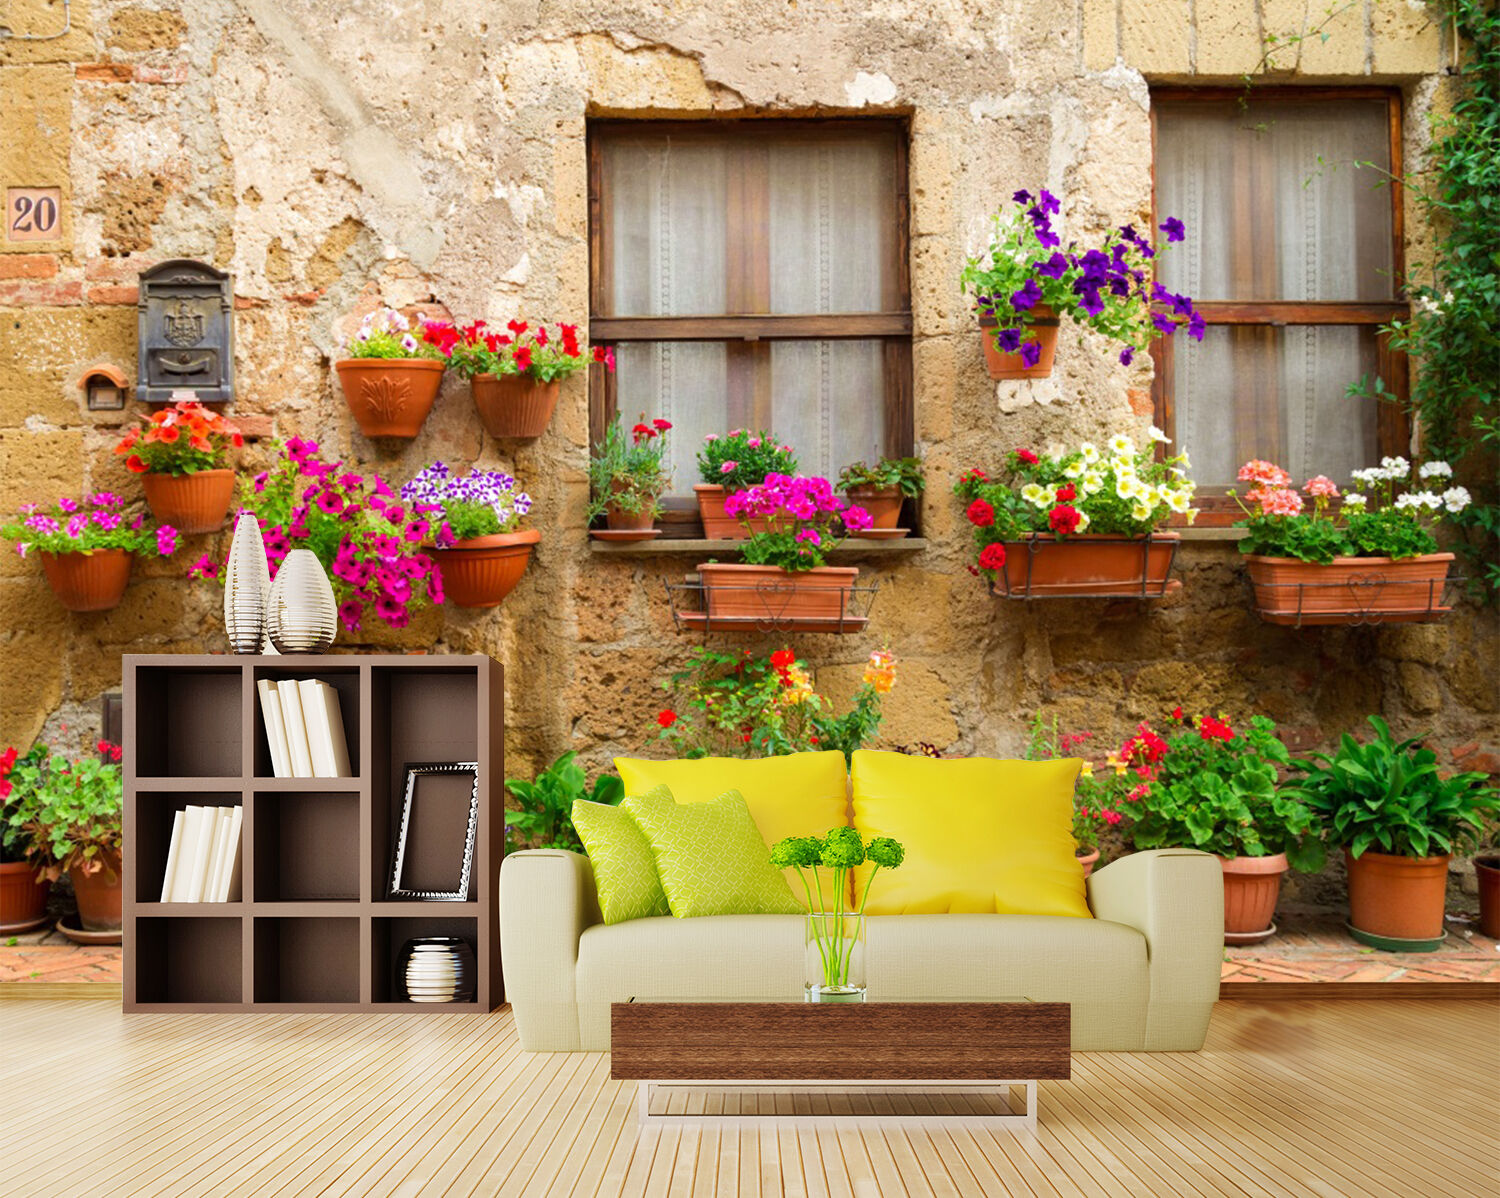 3D Many potted plants Wall Paper Print Wall Decal Deco Indoor Wall Murals